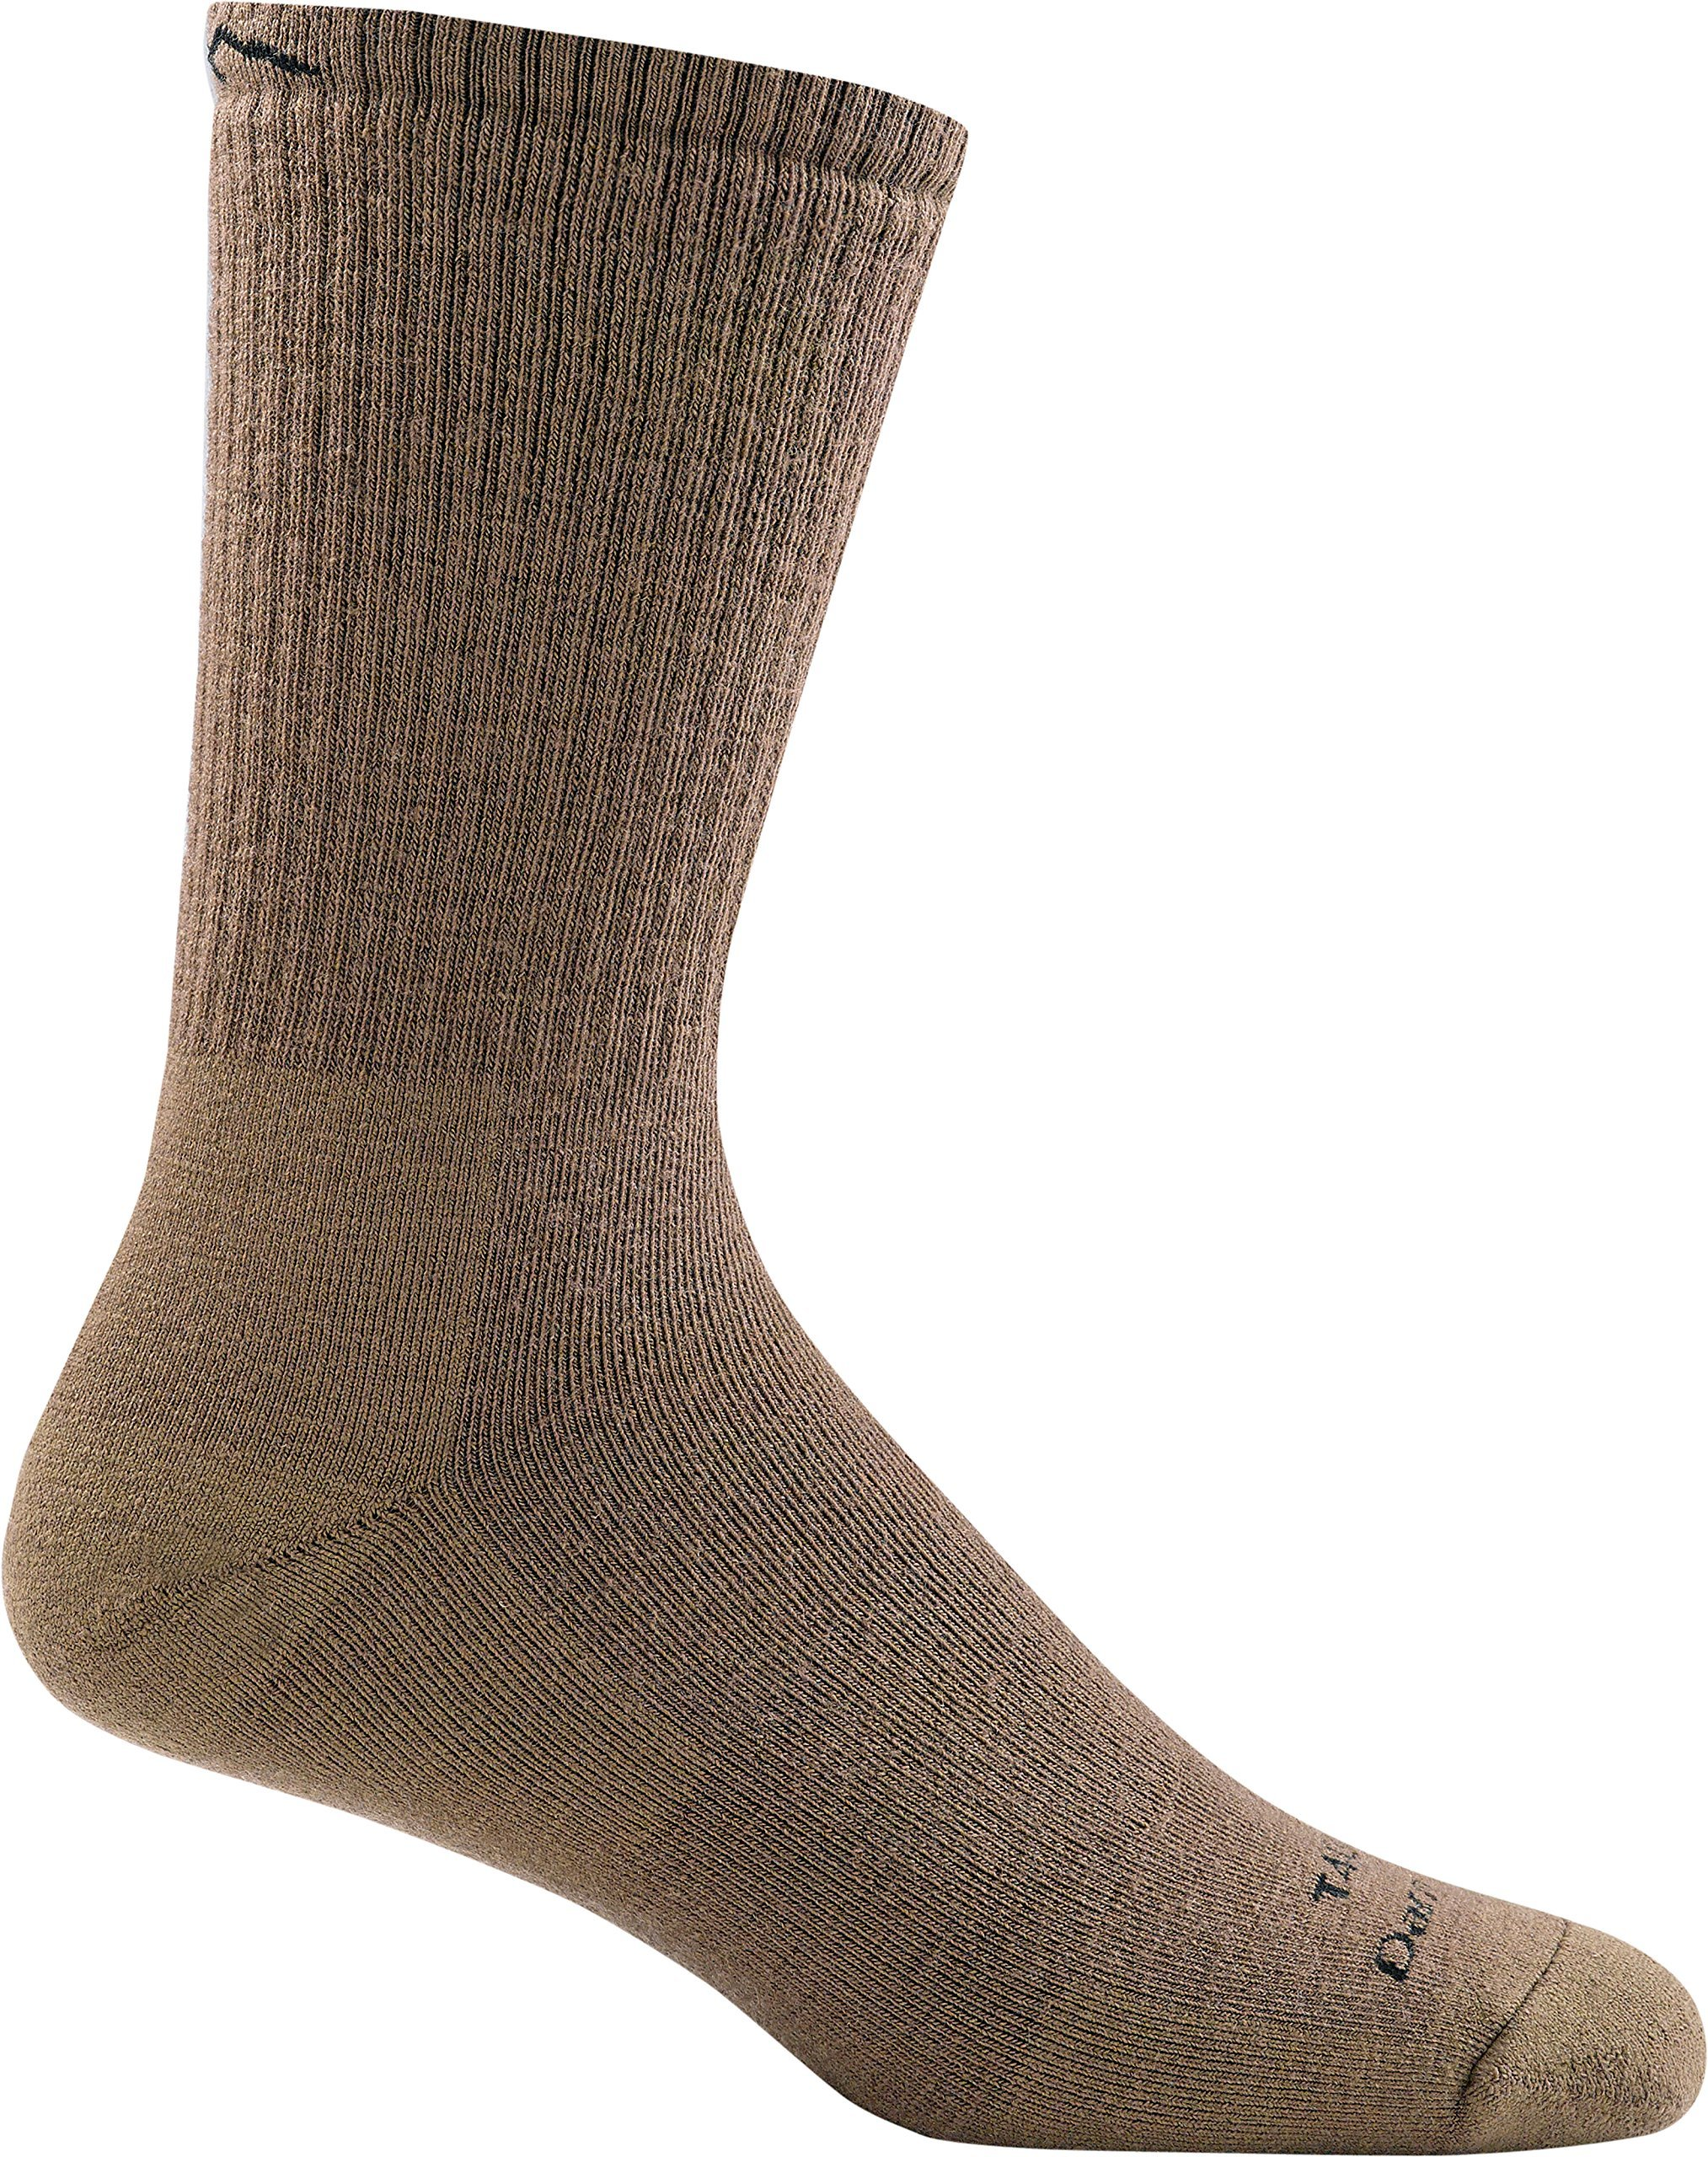 A1m2gby7PSL - Darn Tough T4033 Tactical Boot Extra Cushion Socks